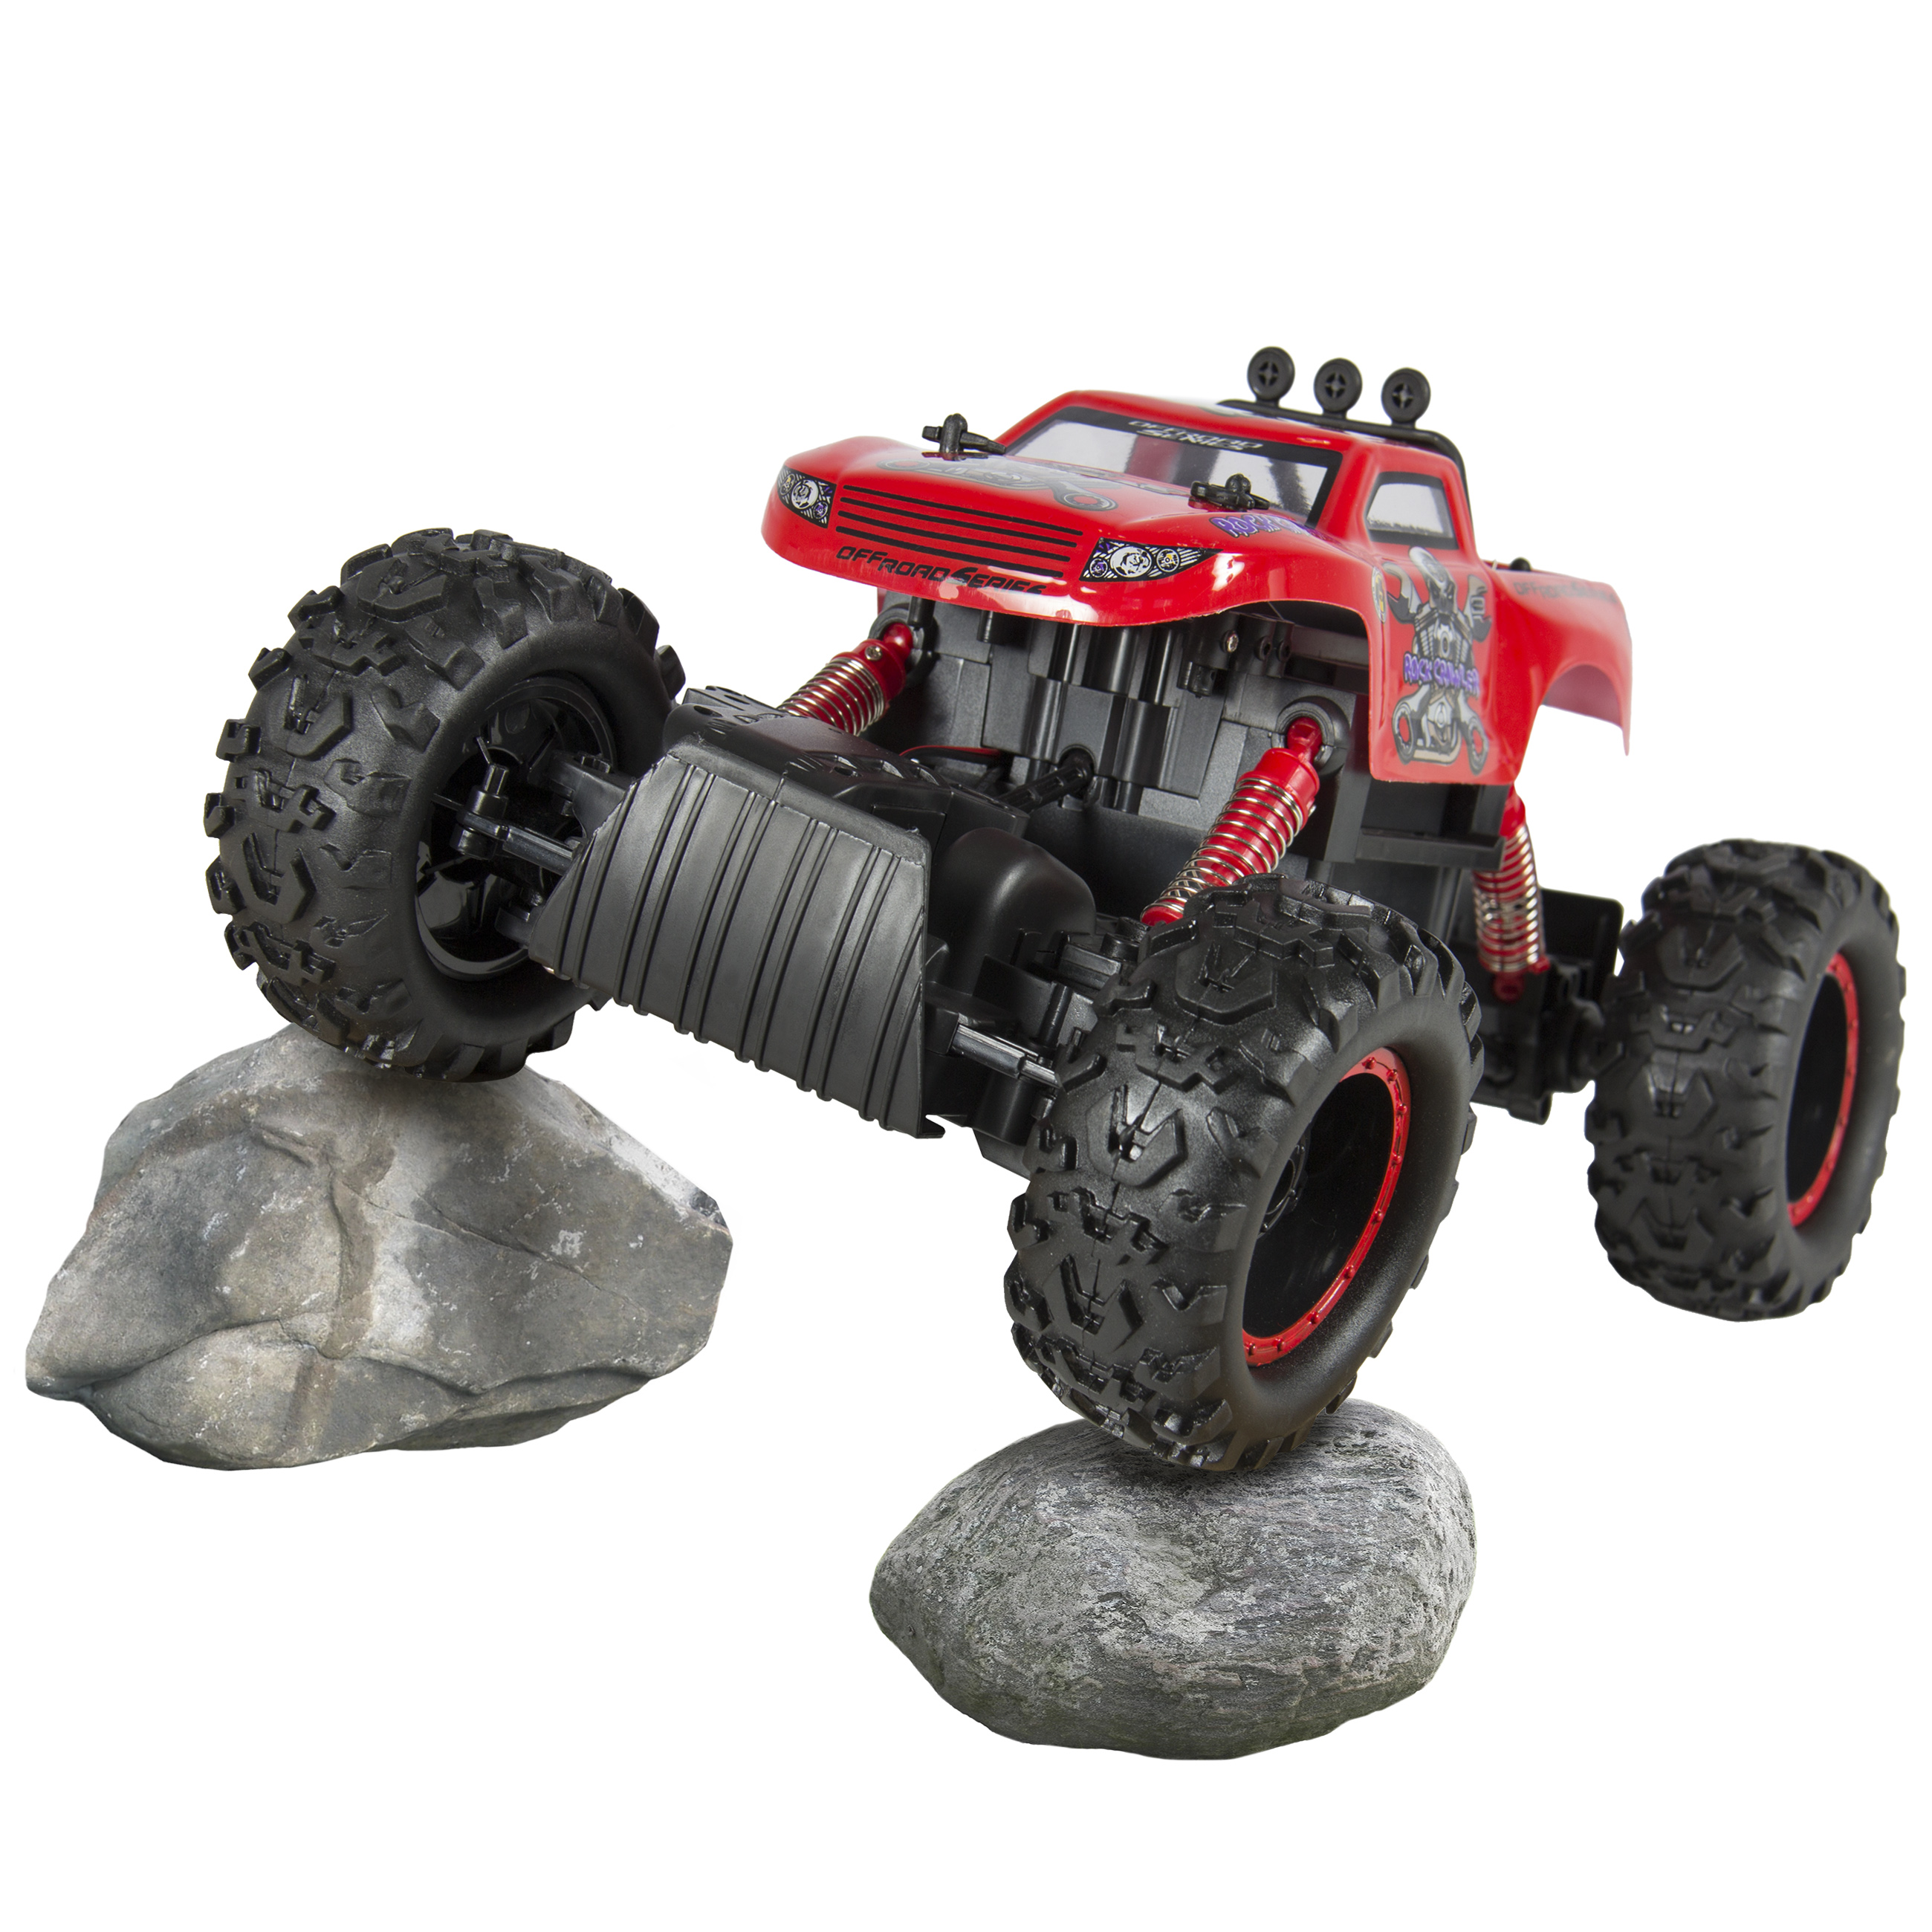 Powerful Remote Control Truck RC Rock Crawler, 4x4 Drive & Monster Wheels Red